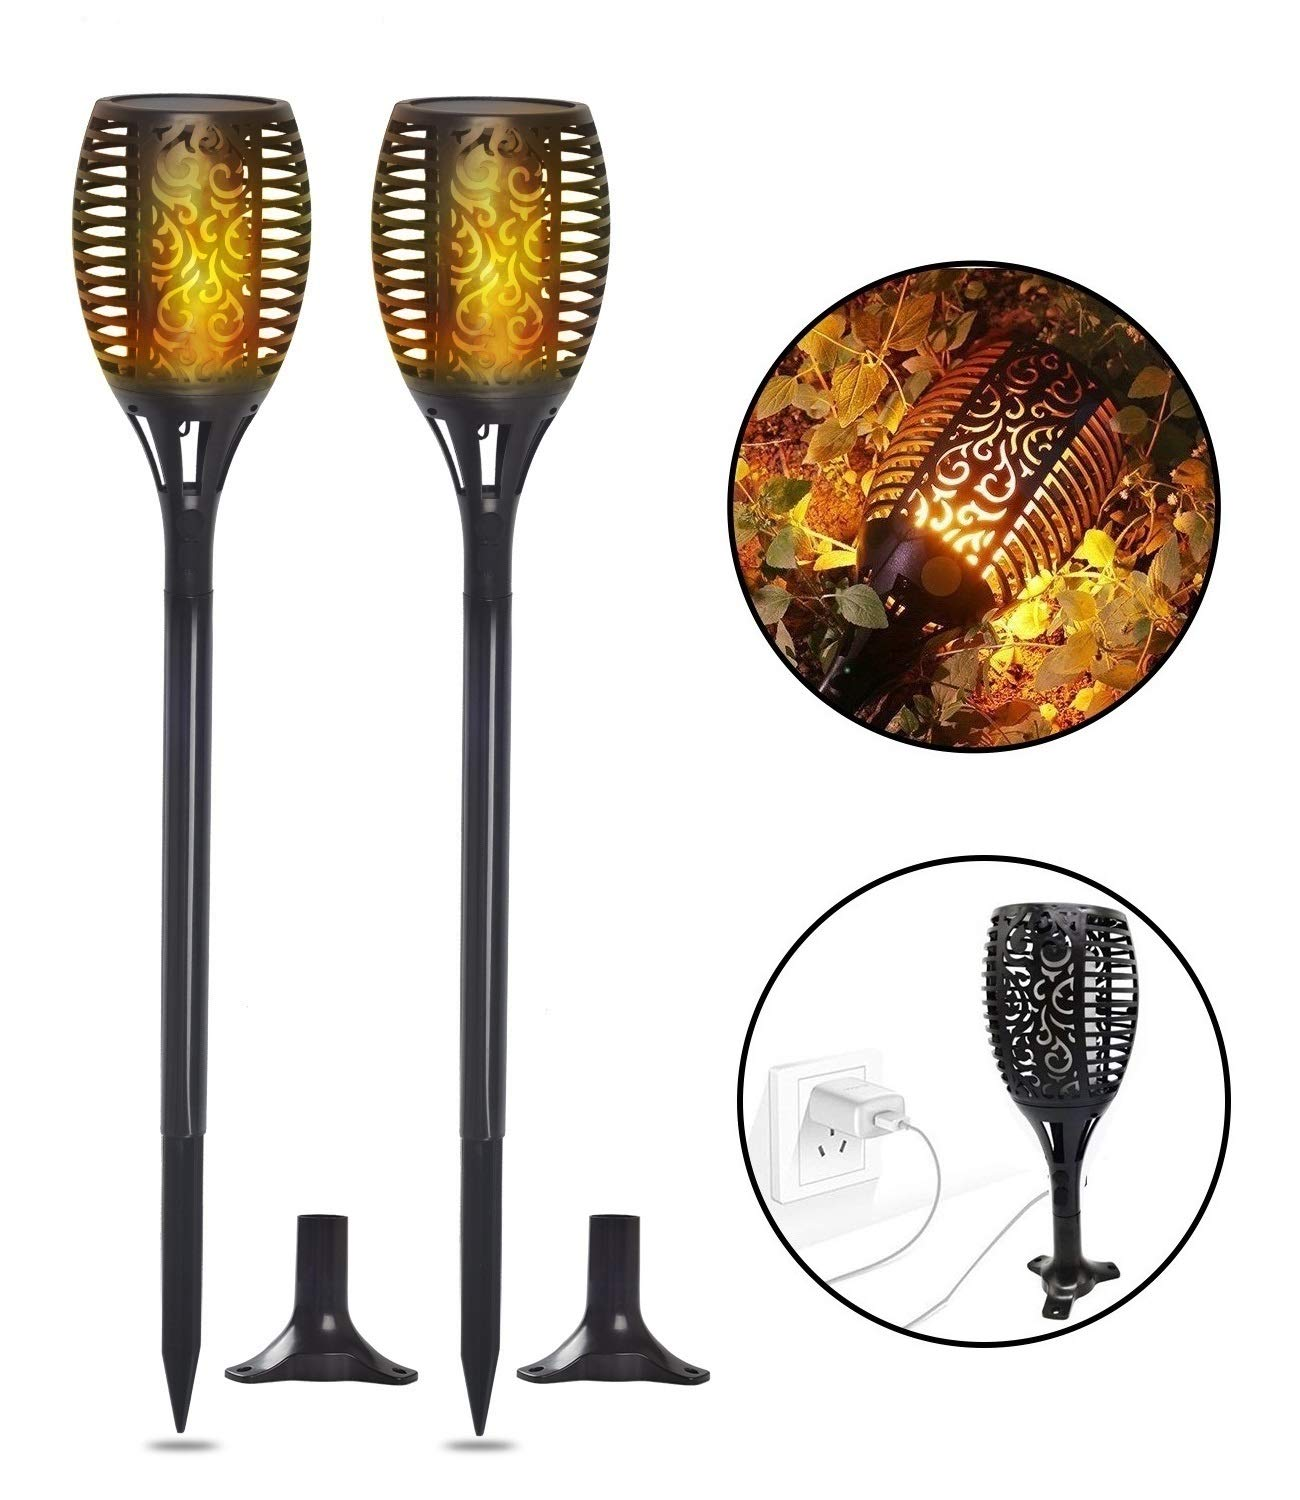 "Solar Torch Lights, Waterproof Flickering Flame Solar Torches Dancing Flames Landscape USB Charging Decoration Lighting Dusk to Dawn Outdoor Security Path Light for Garden Patio Yard Driveway 2 Pack - GORGEOUS DANCING FLAMES DESIGN: A safe alternative to the real ""flames"" - LEDs in the light cast a safe, soft, mood-enhancing glow. Please note the actual height of the item is 28.4 inches. TWO CHARGING MODES:Different from general solar torch light, it could powred by Solar energy and USB Charging,you can place it anywhereonce powered, no matter in sunny day,in winter, rainy day or cloudy day. THREE EASY INSTALLATION: Pathway, Floor, Table available. No wiring required, simply install it anywhere you like and enjoy the warm torch light. - patio, outdoor-lights, outdoor-decor - 71 e7dj7IDL -"